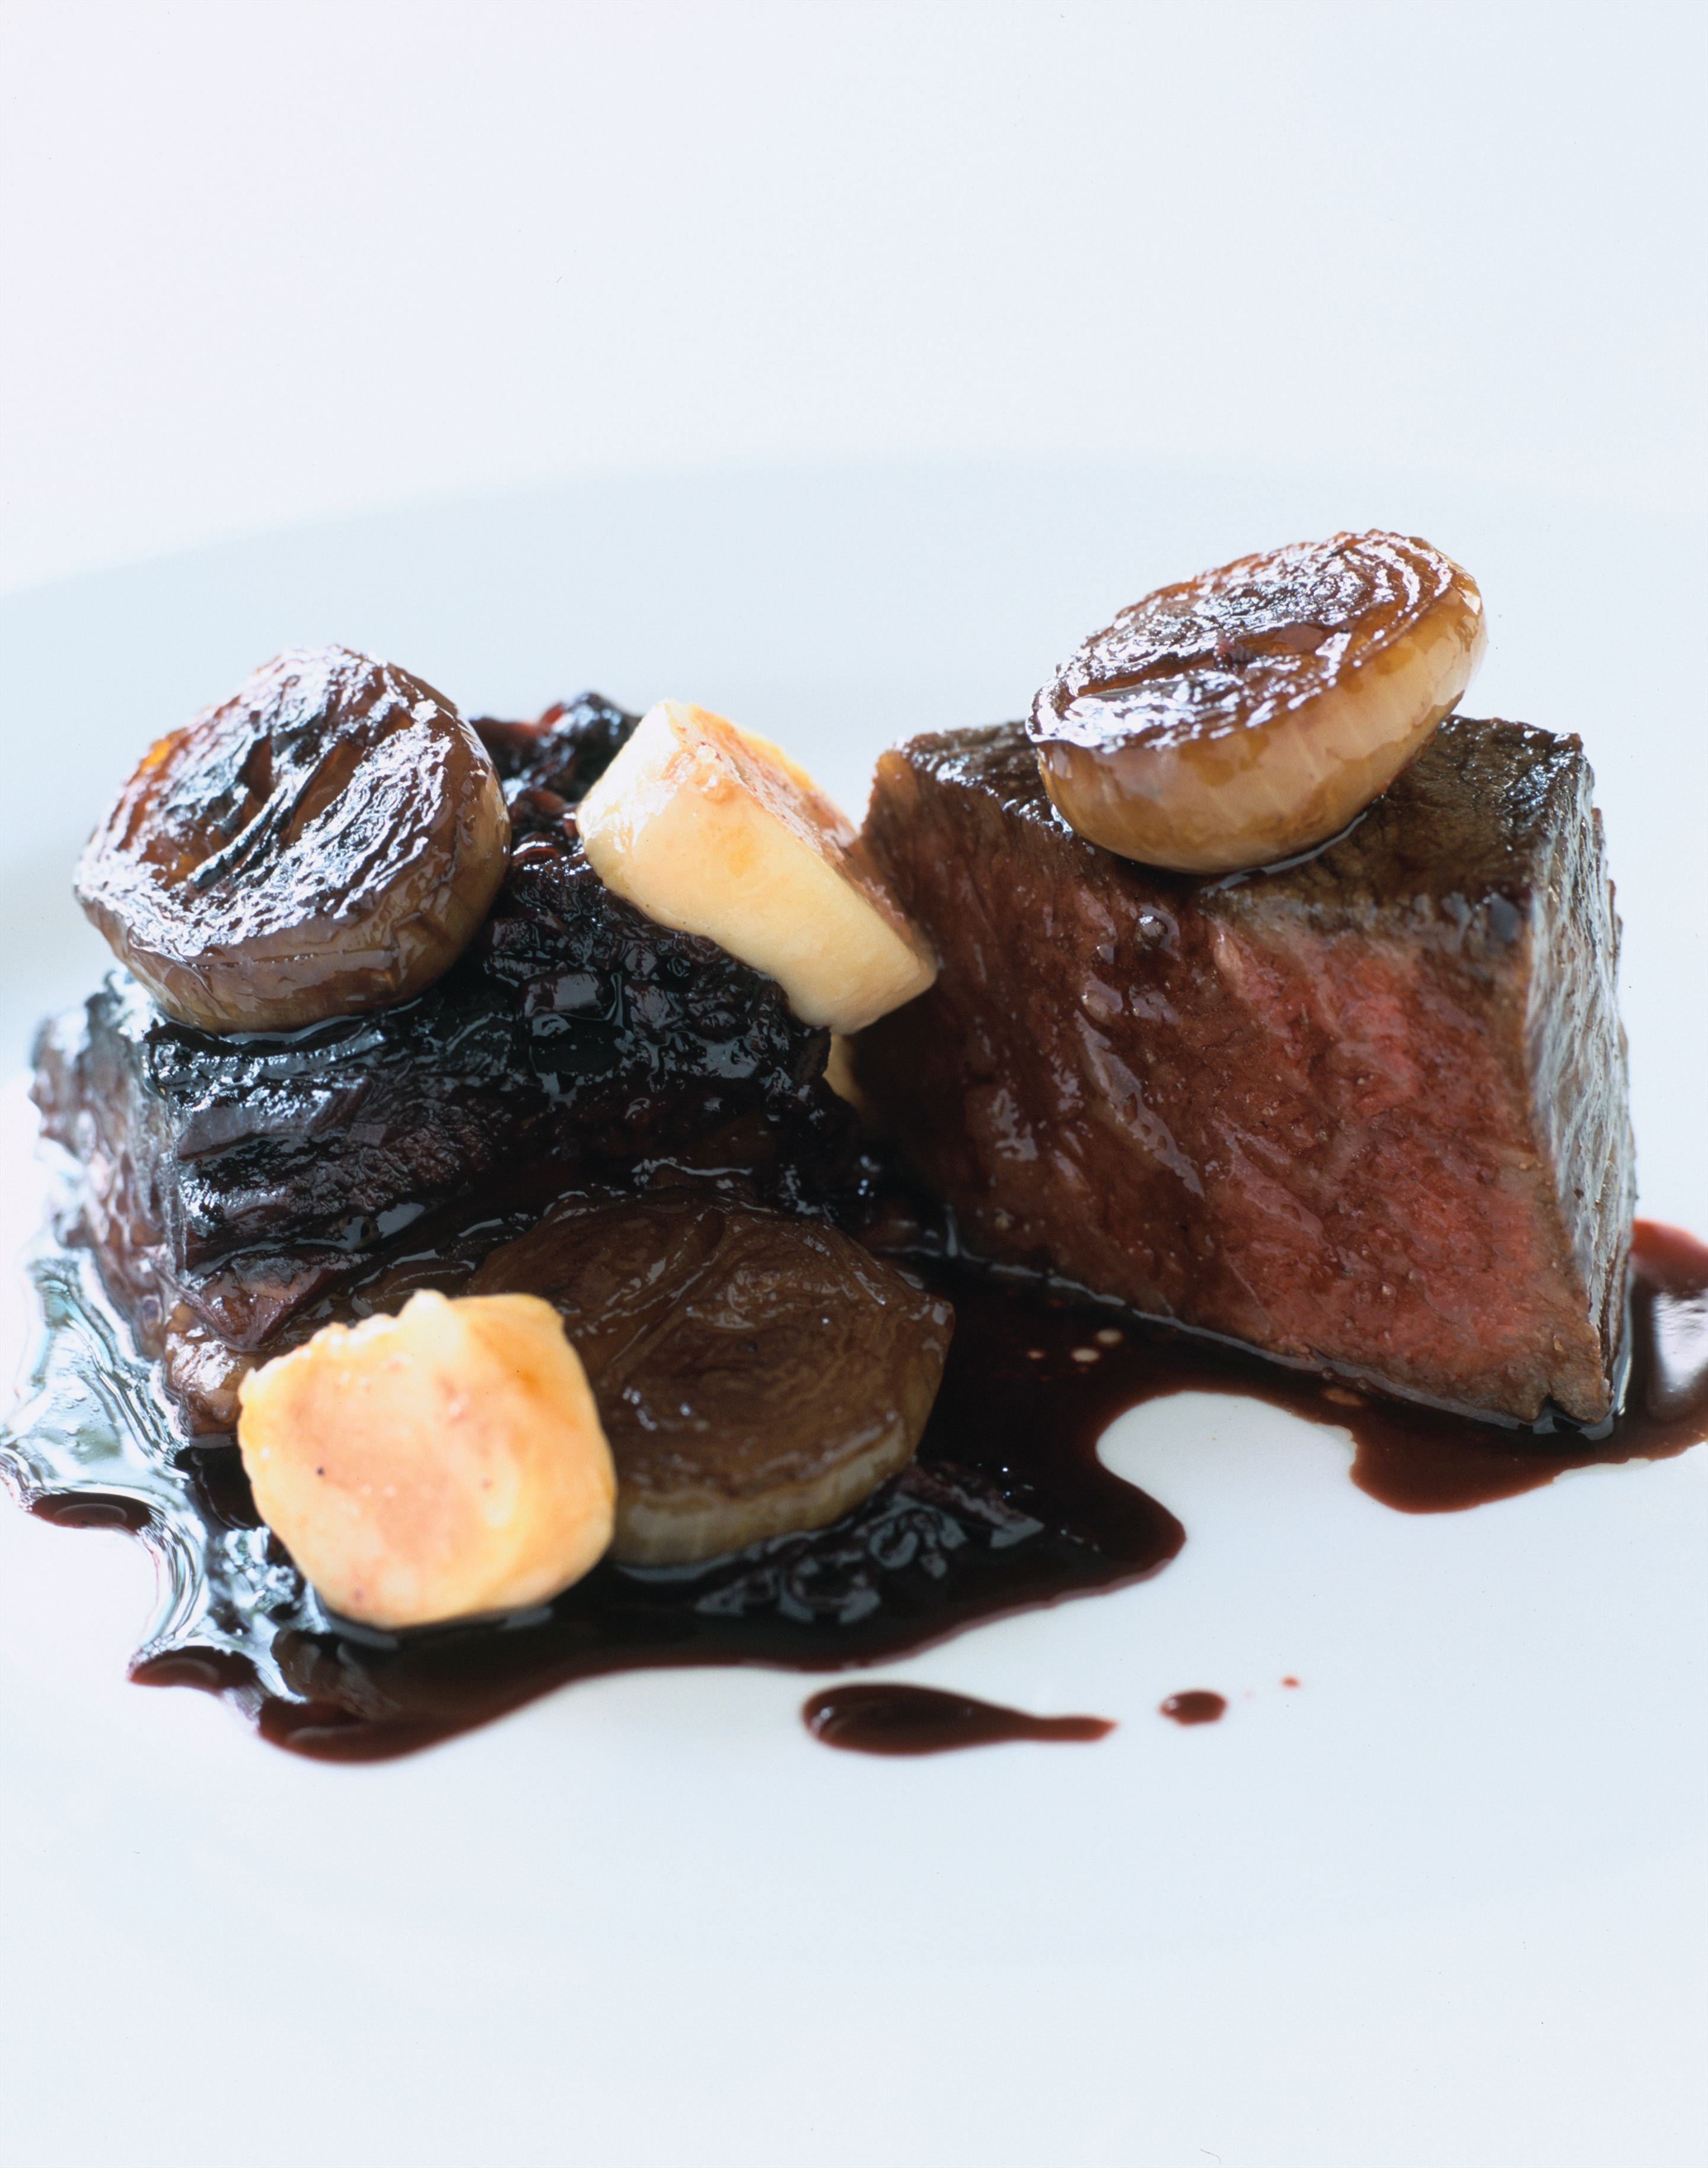 Roast Wagyu sirloin bordelaise with braised brisket and sauce bercy